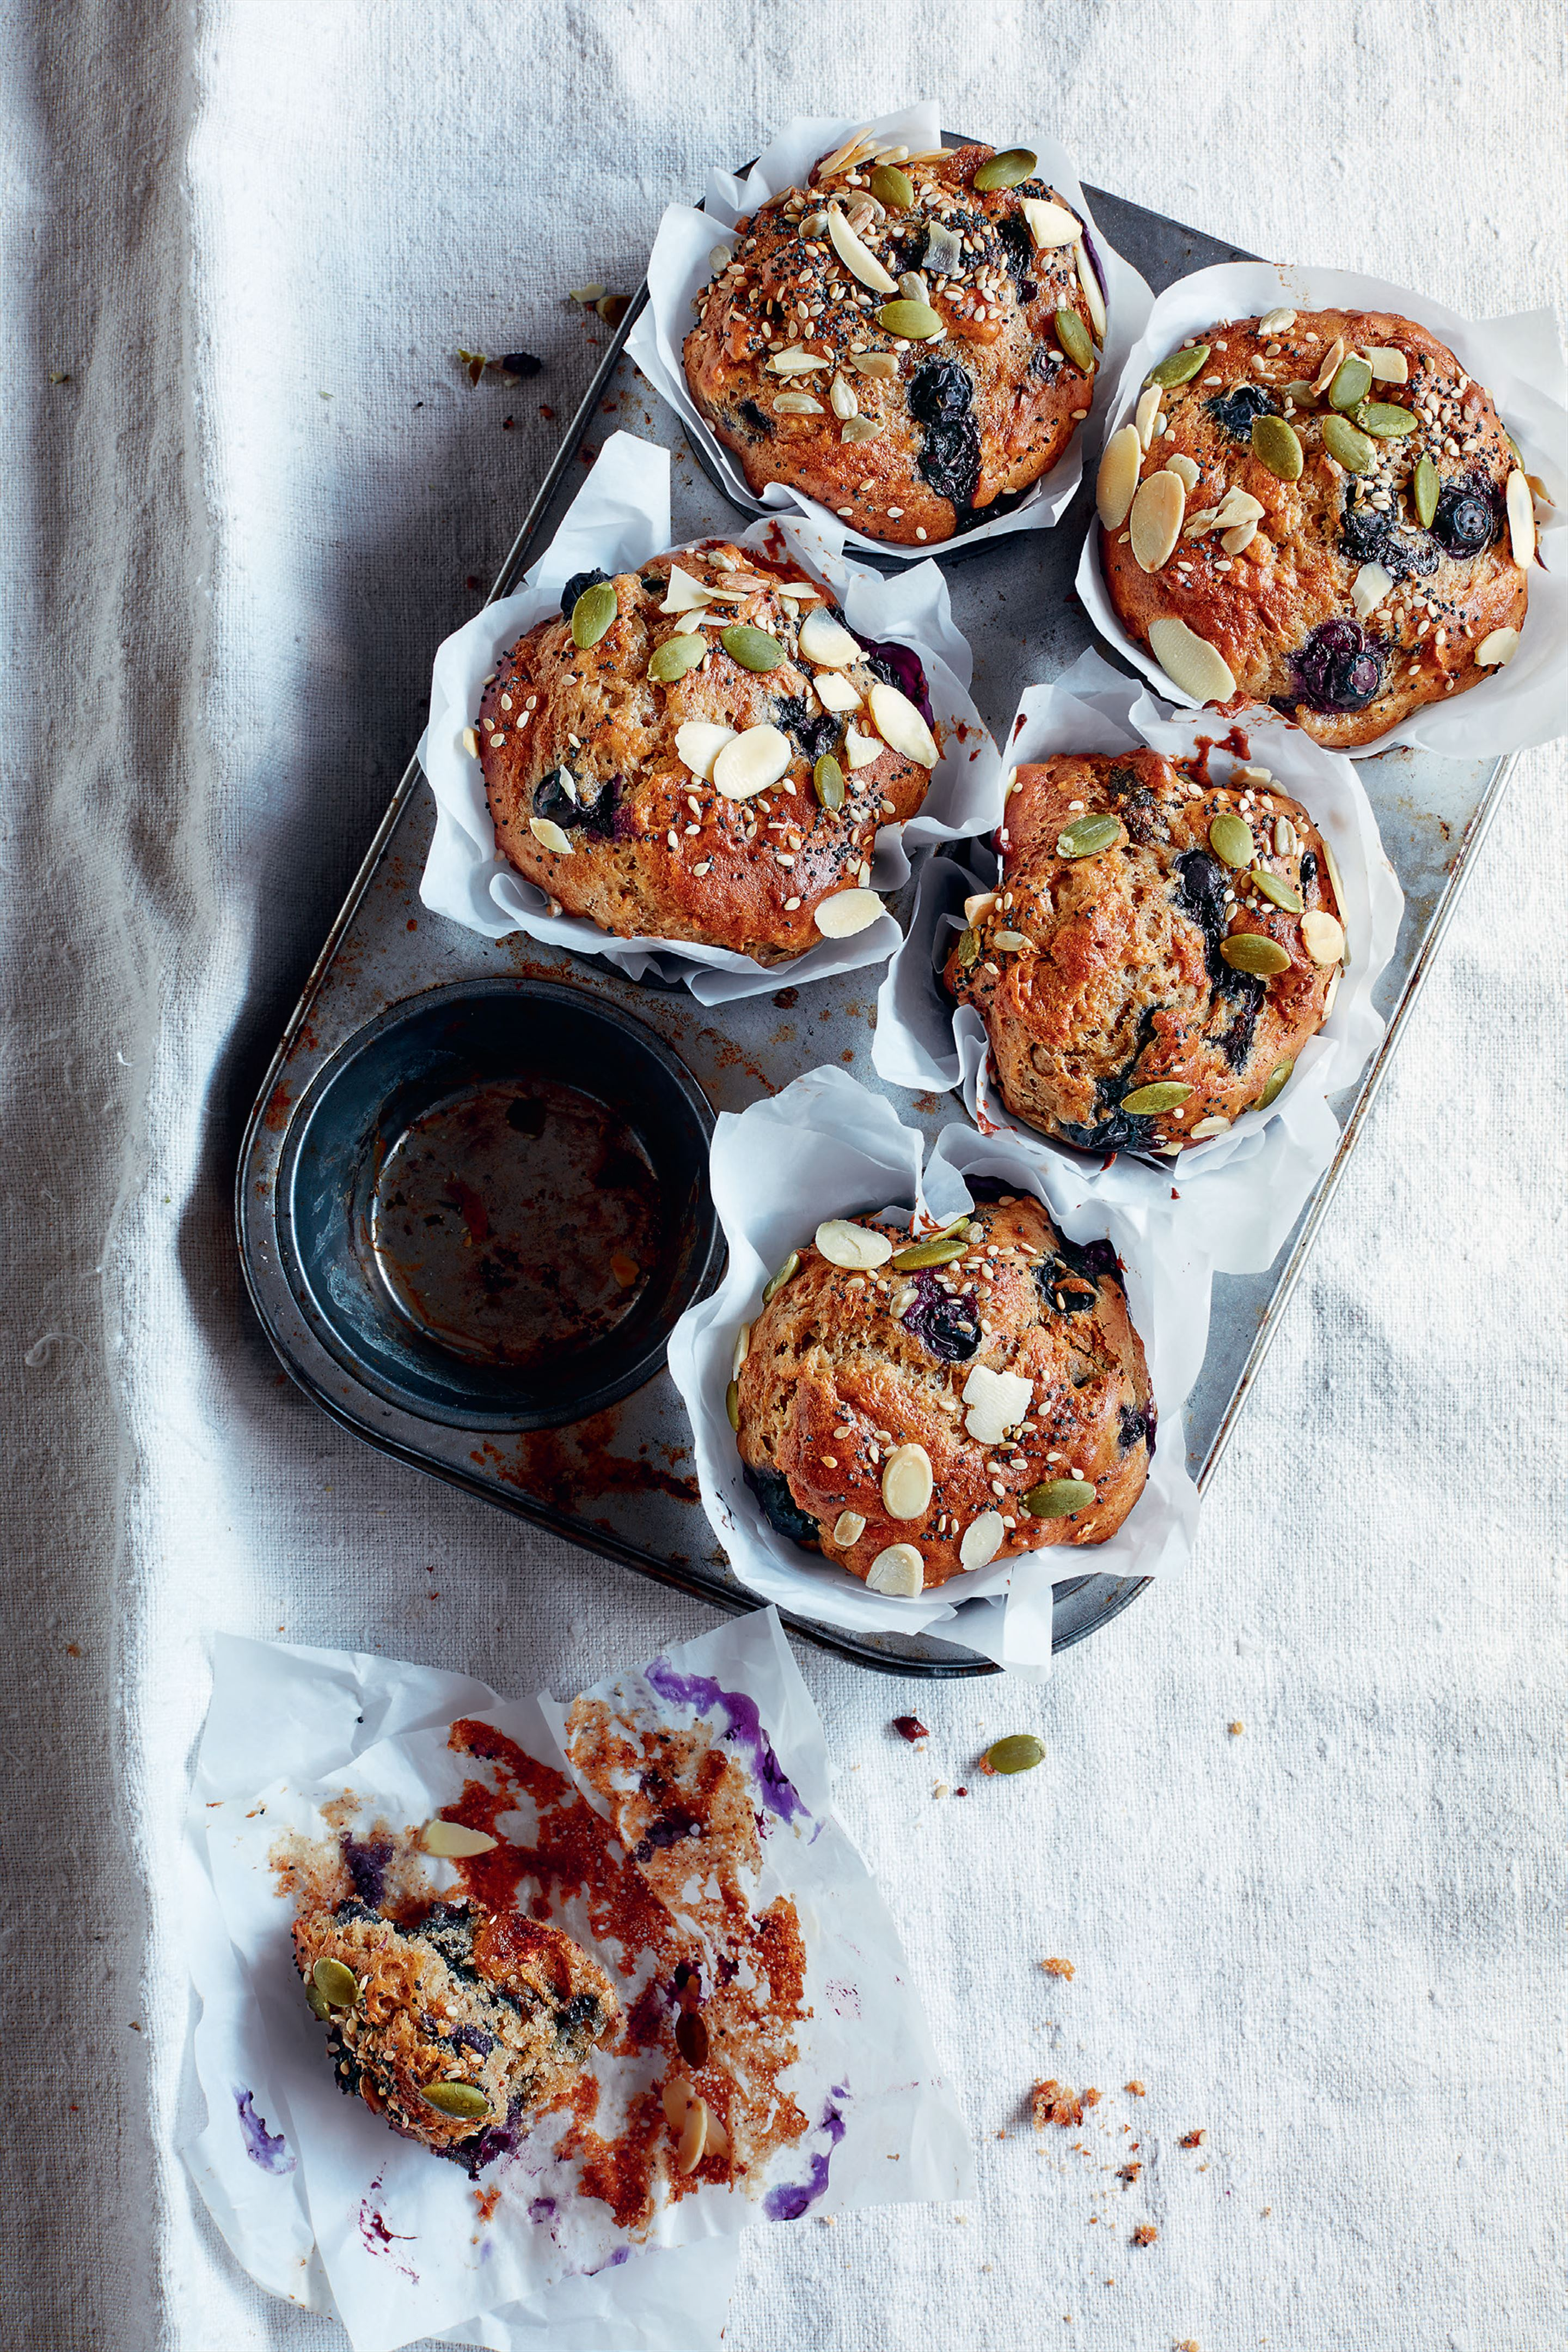 Blueberry and almond breakfast muffins